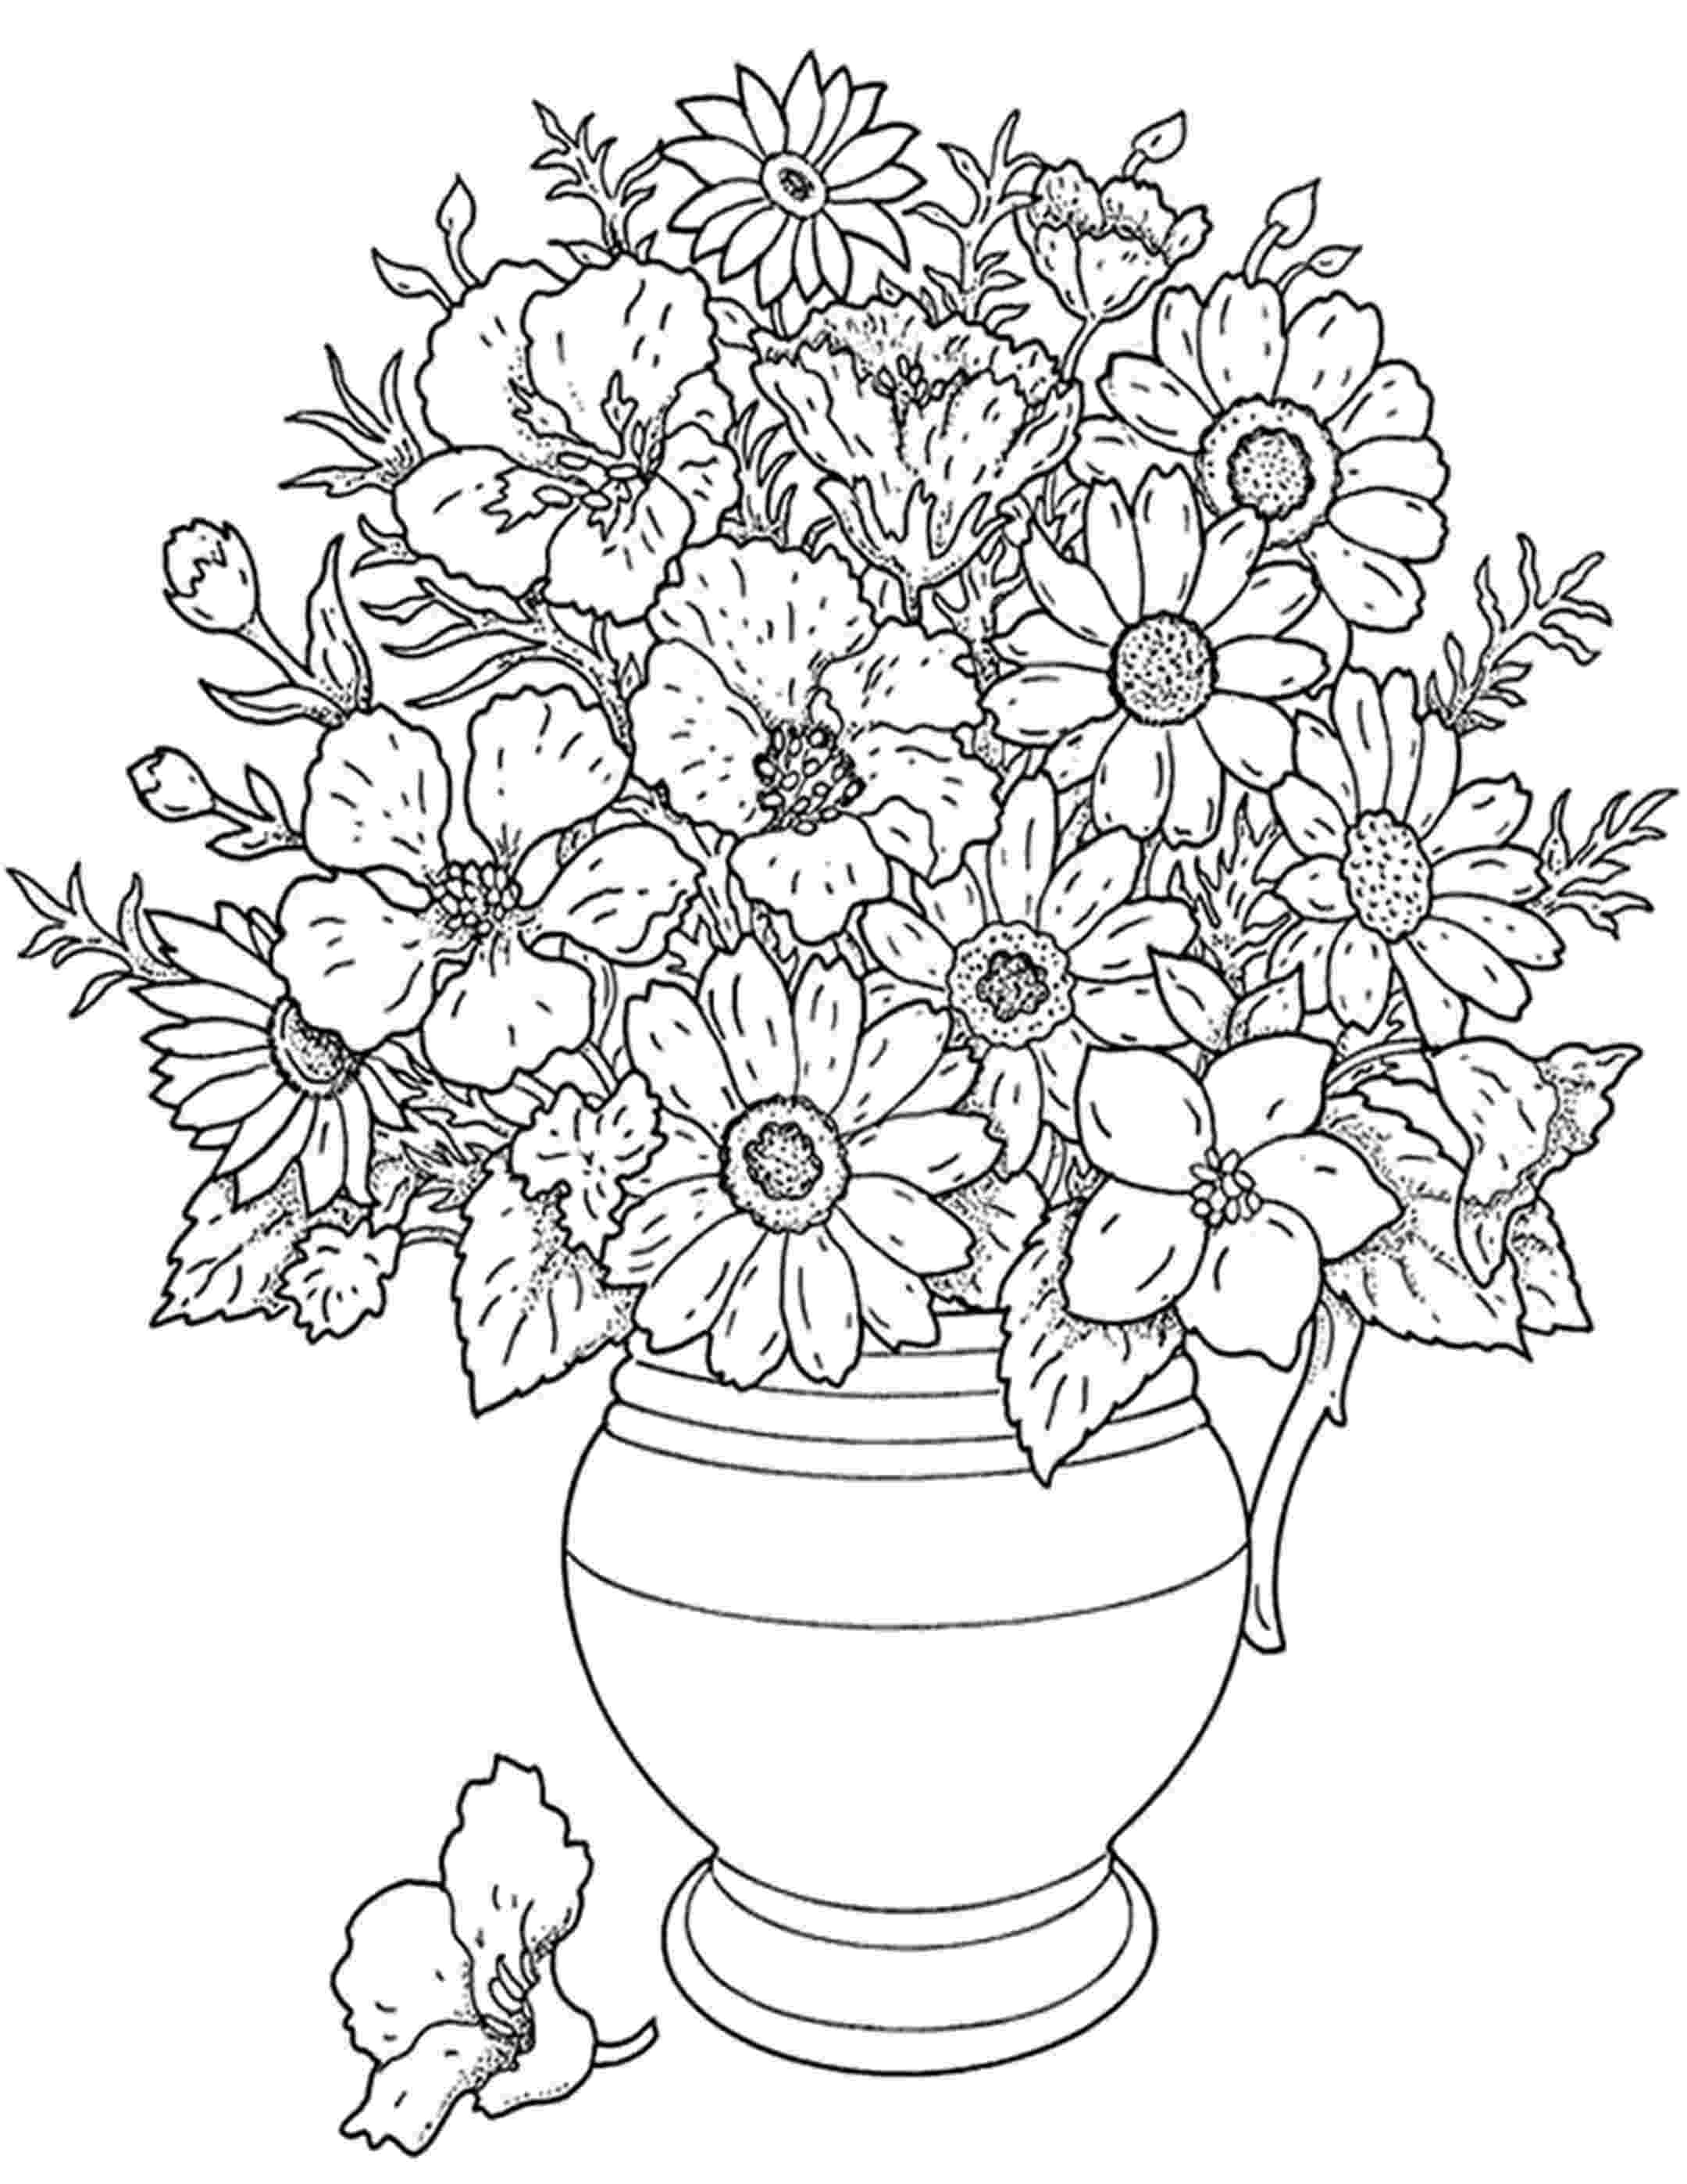 coloring pictures of bouquet of flowers flower bouquet coloring page flickr photo sharing of of flowers bouquet pictures coloring